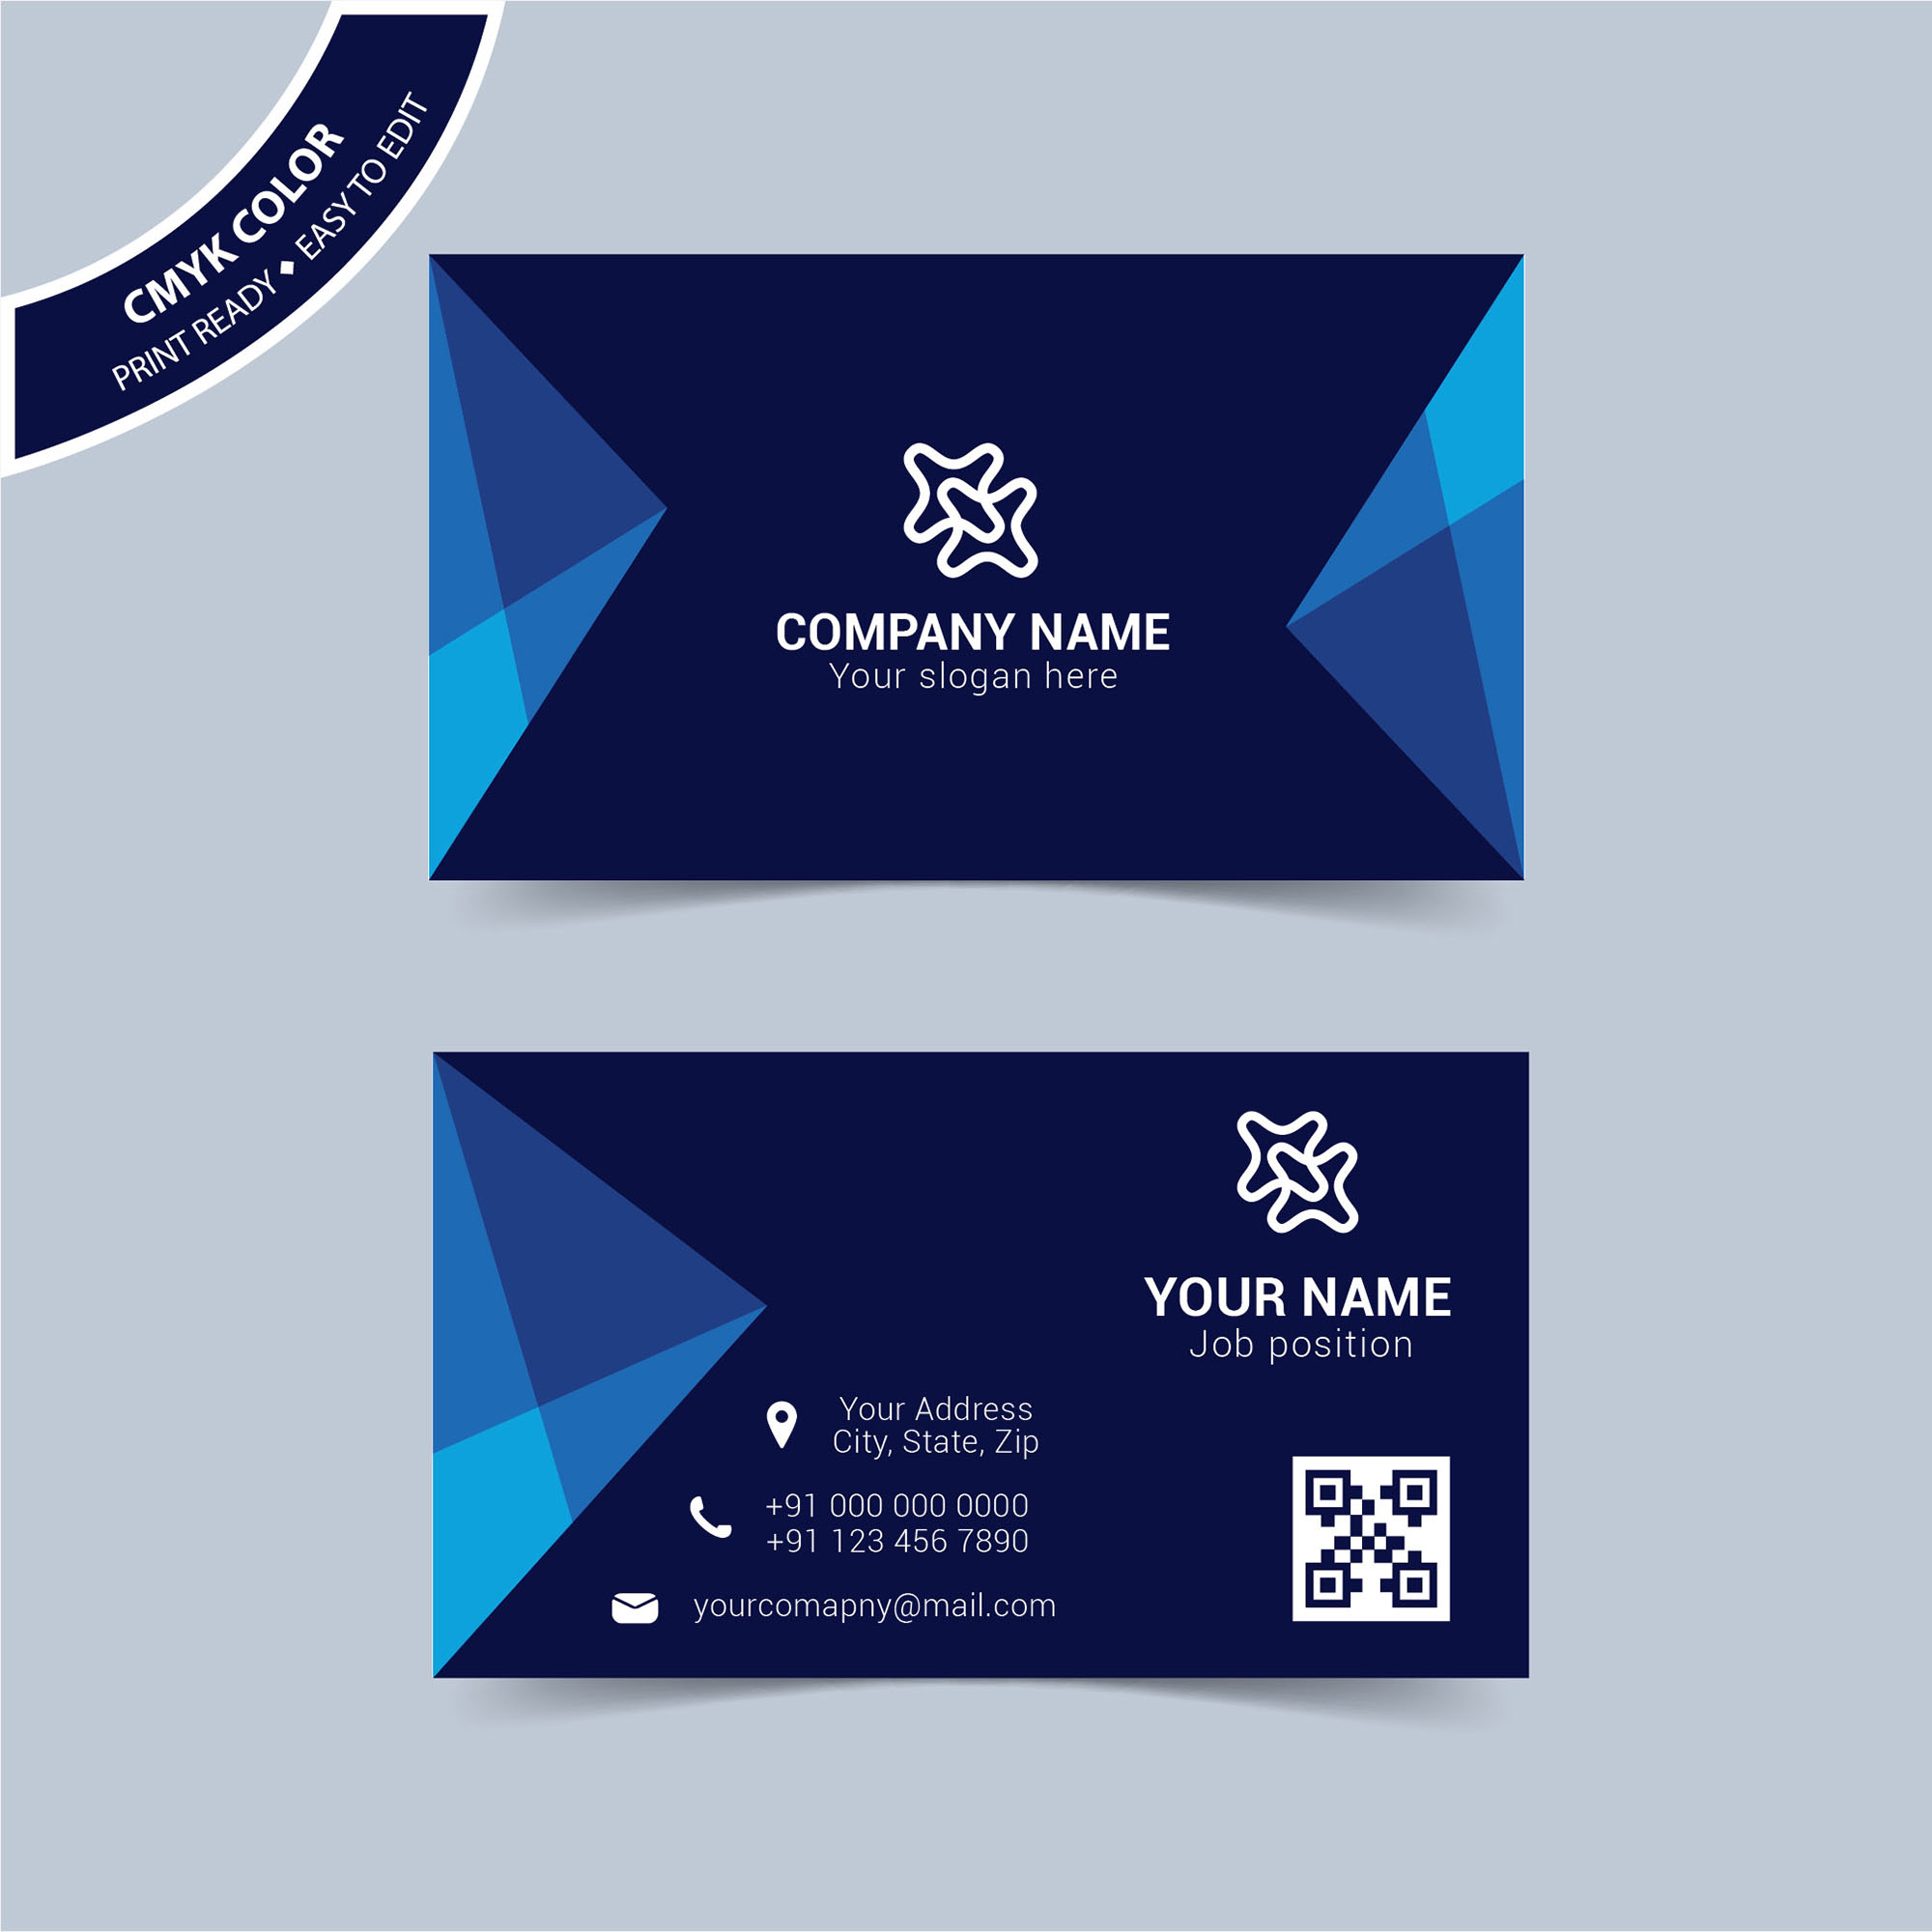 Modern blue business card template free download wisxi business card business cards business card design business card template design templates reheart Choice Image